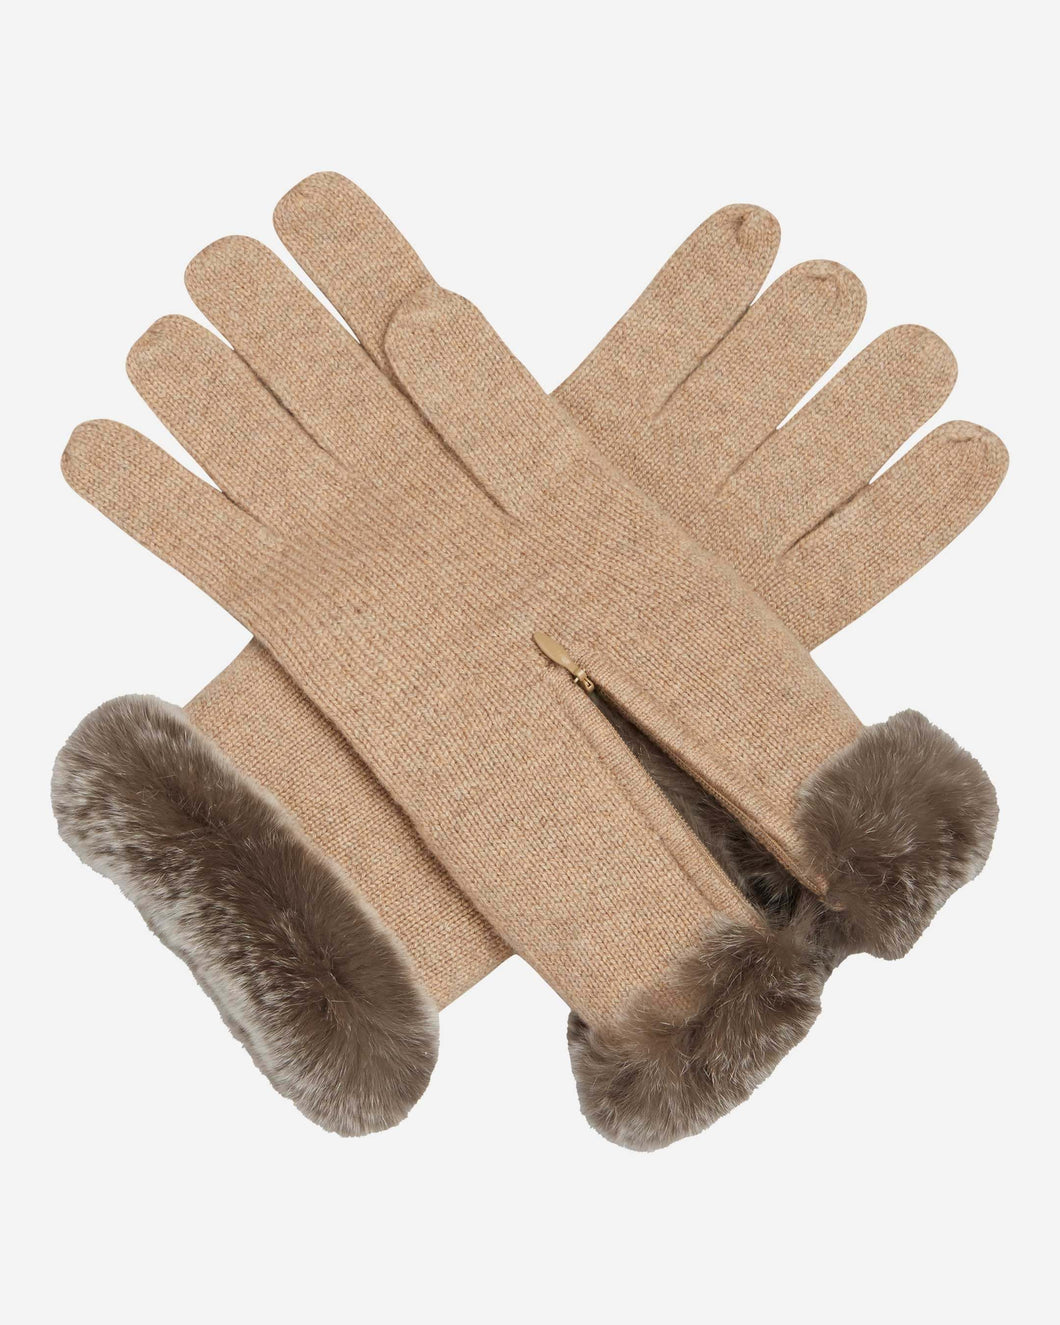 Fur And Cashmere Gloves Heather Camel Brown + Sable Brown Tipped Fur